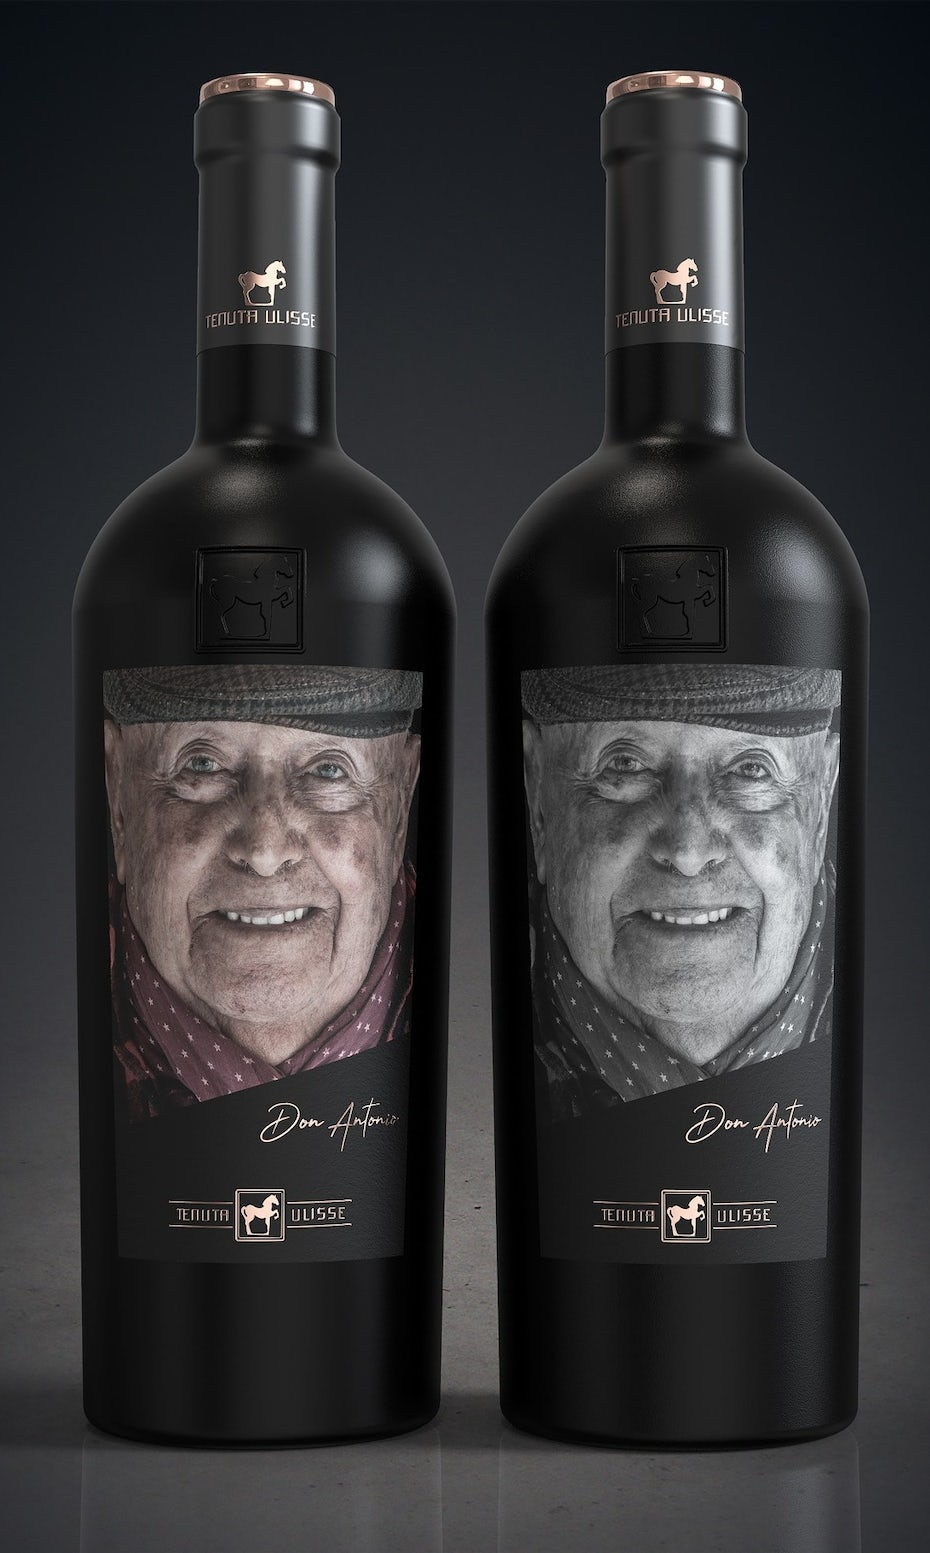 Wine label design with photo portrait